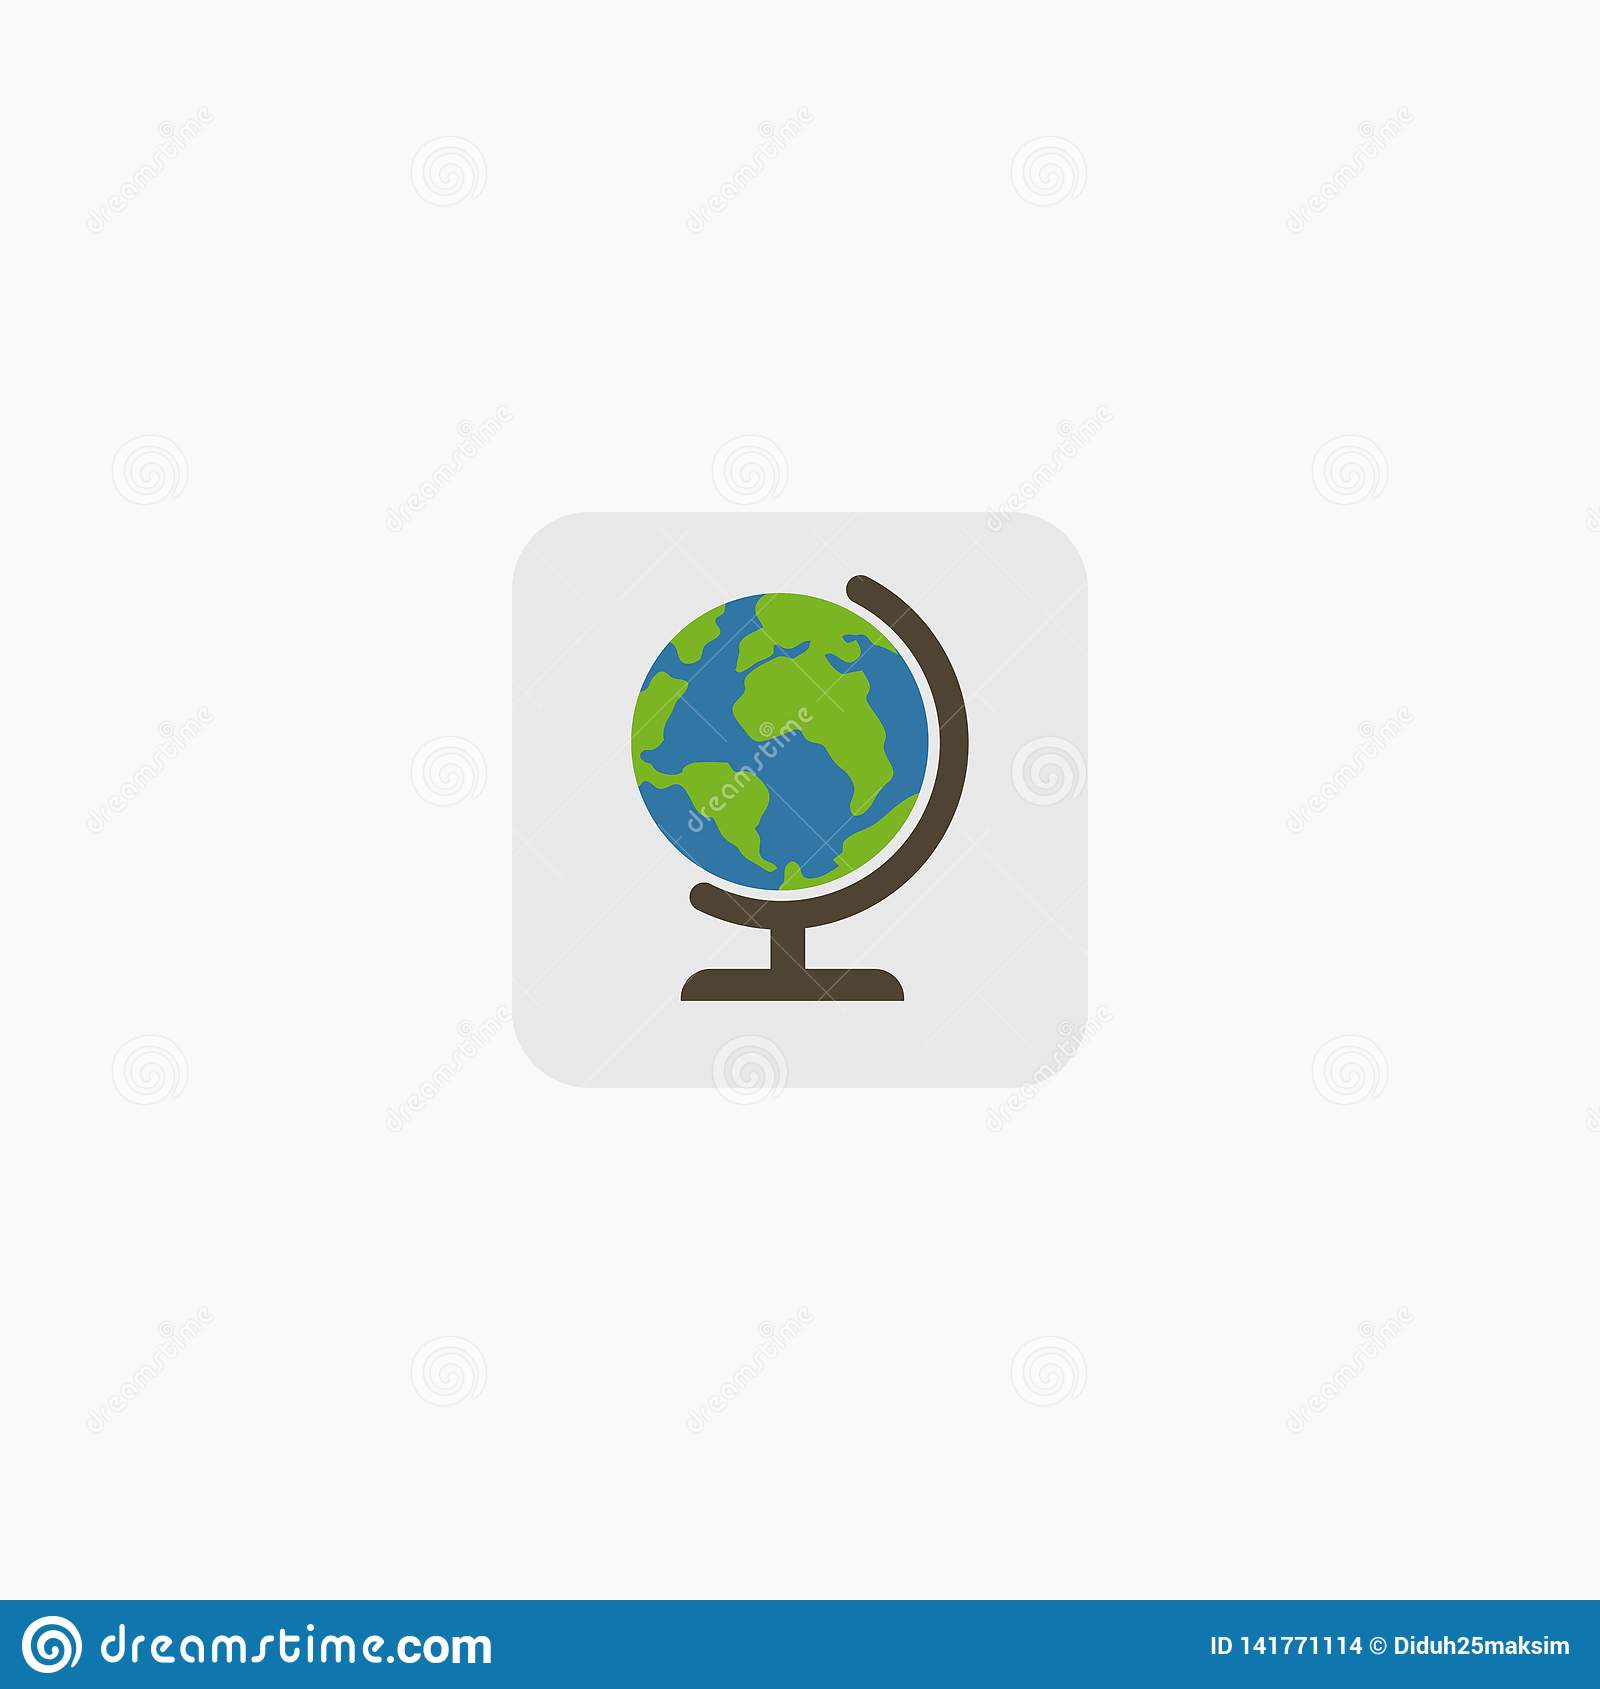 Earth globes isolated on white background. Flat planet Earth icon. Vector illustration. EPS 10